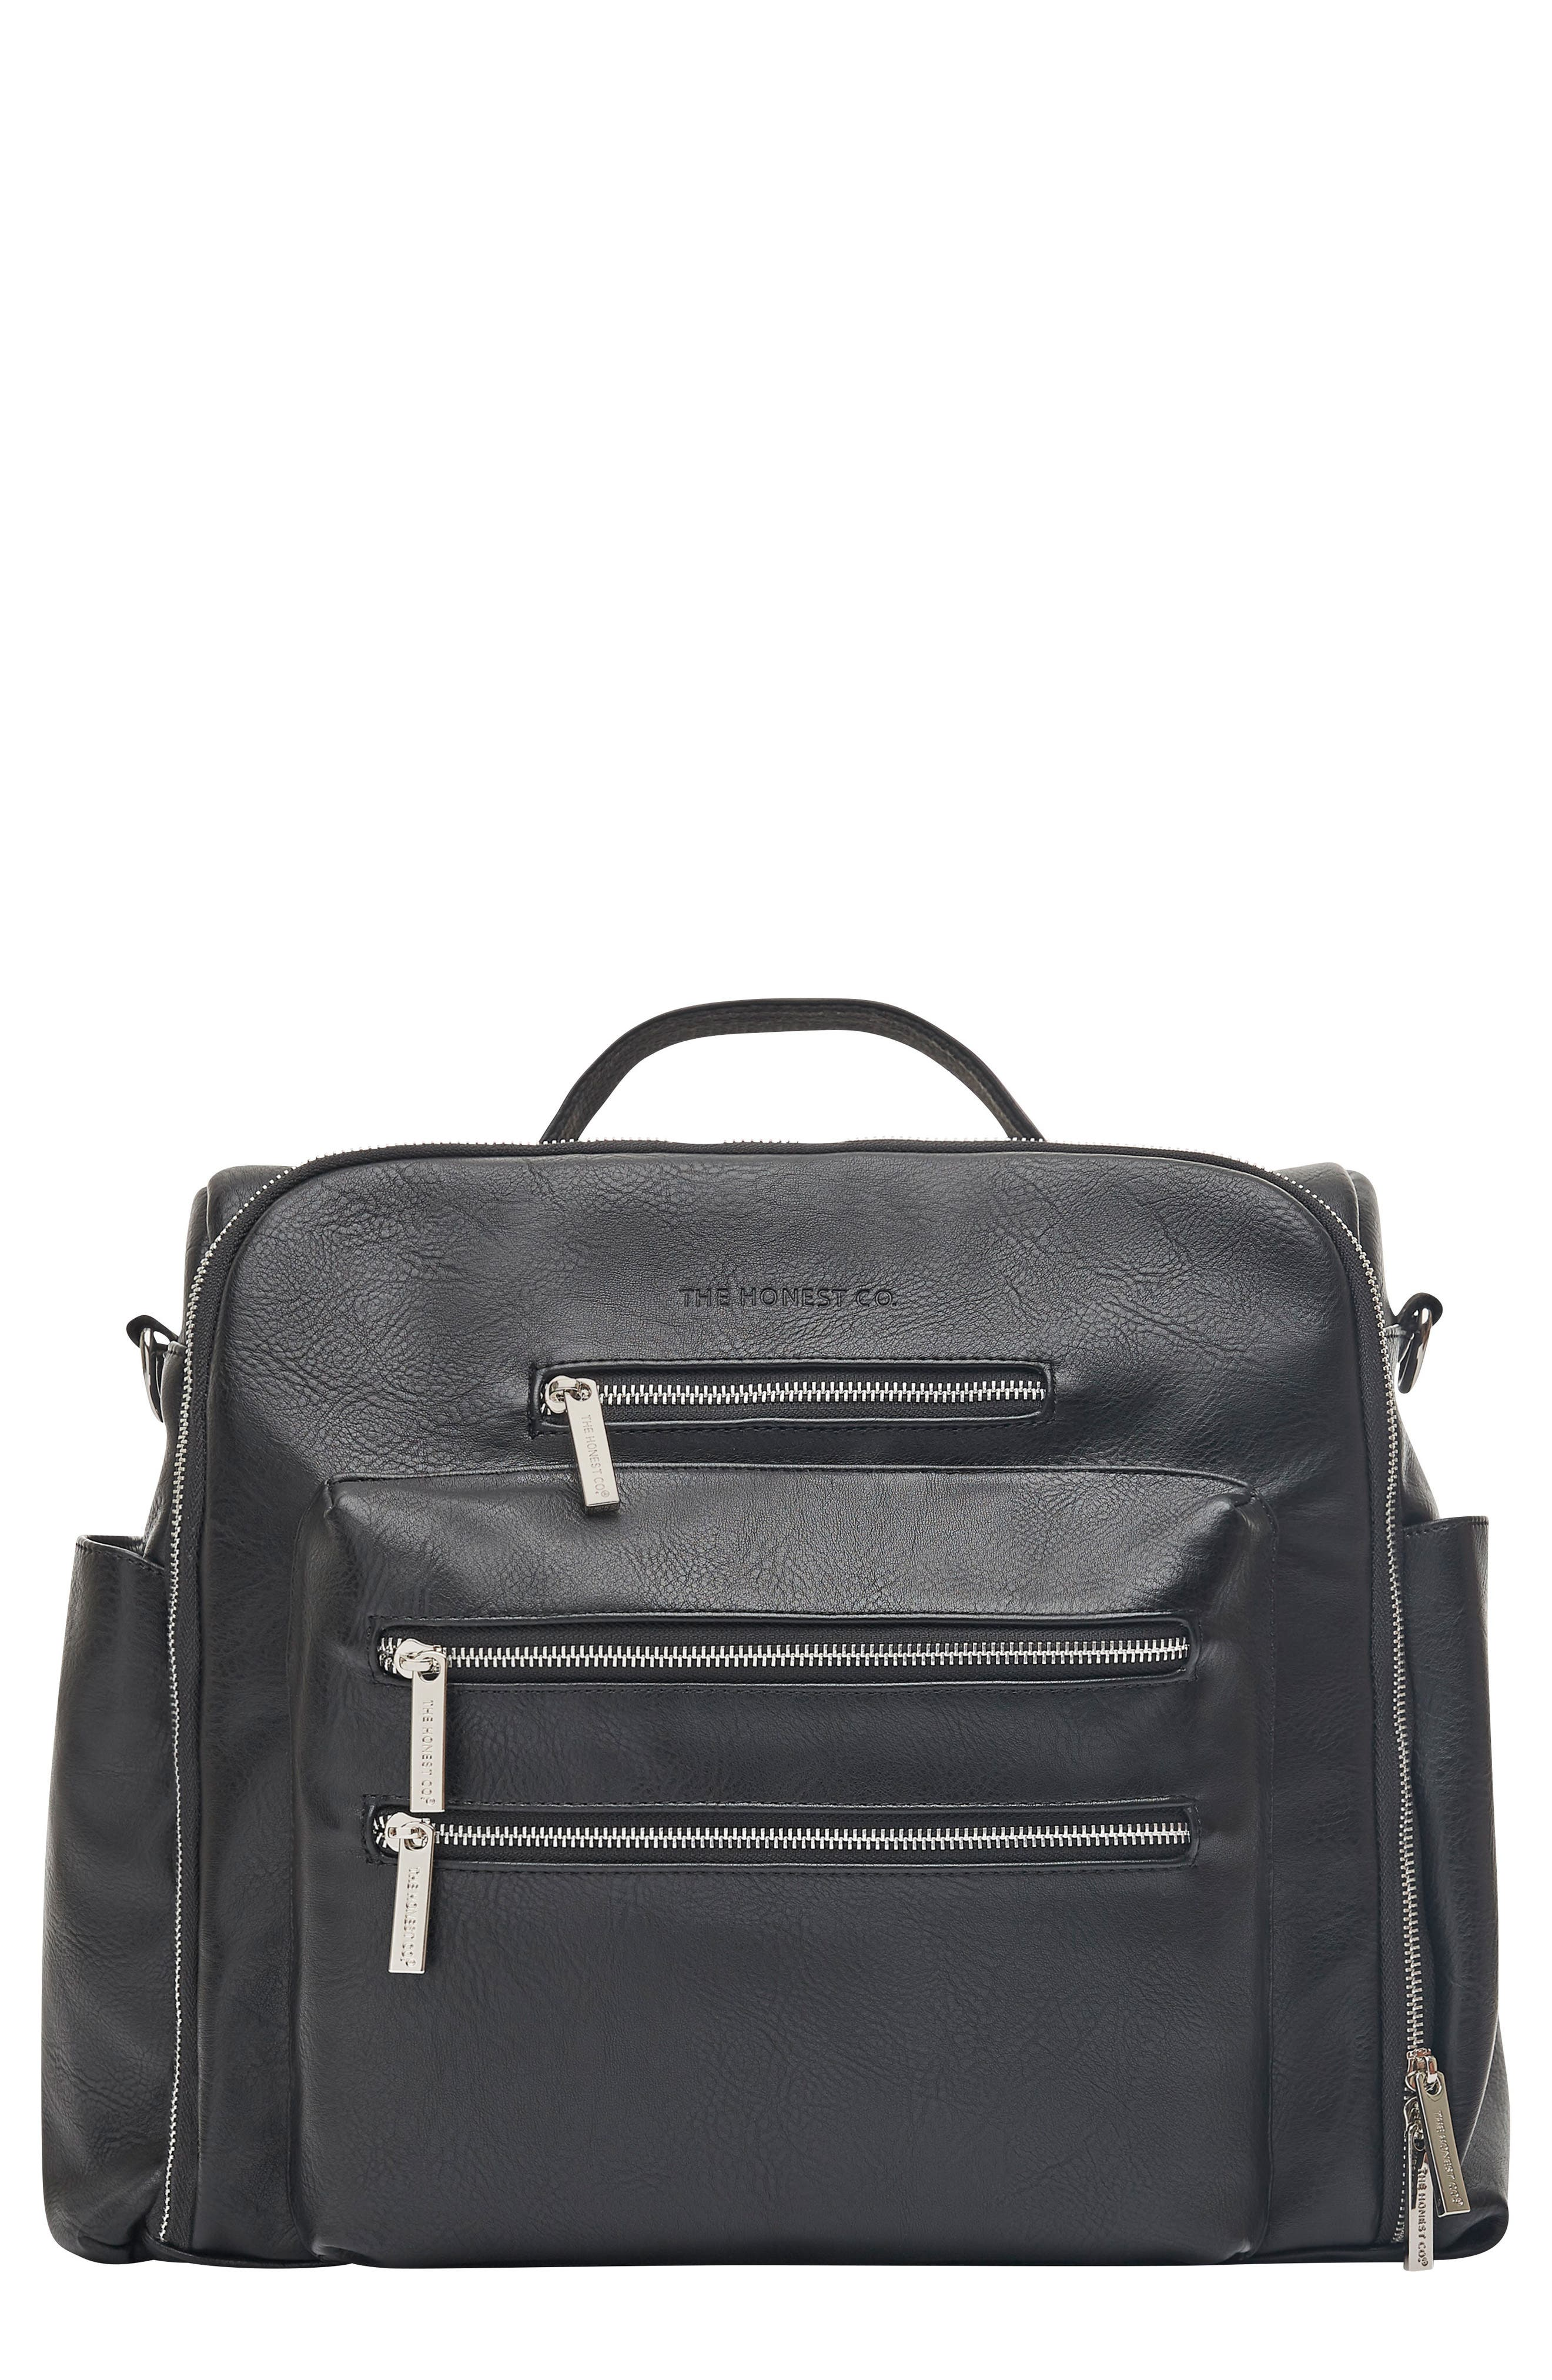 Cross Country Faux Leather Diaper Bag, Main, color, 001